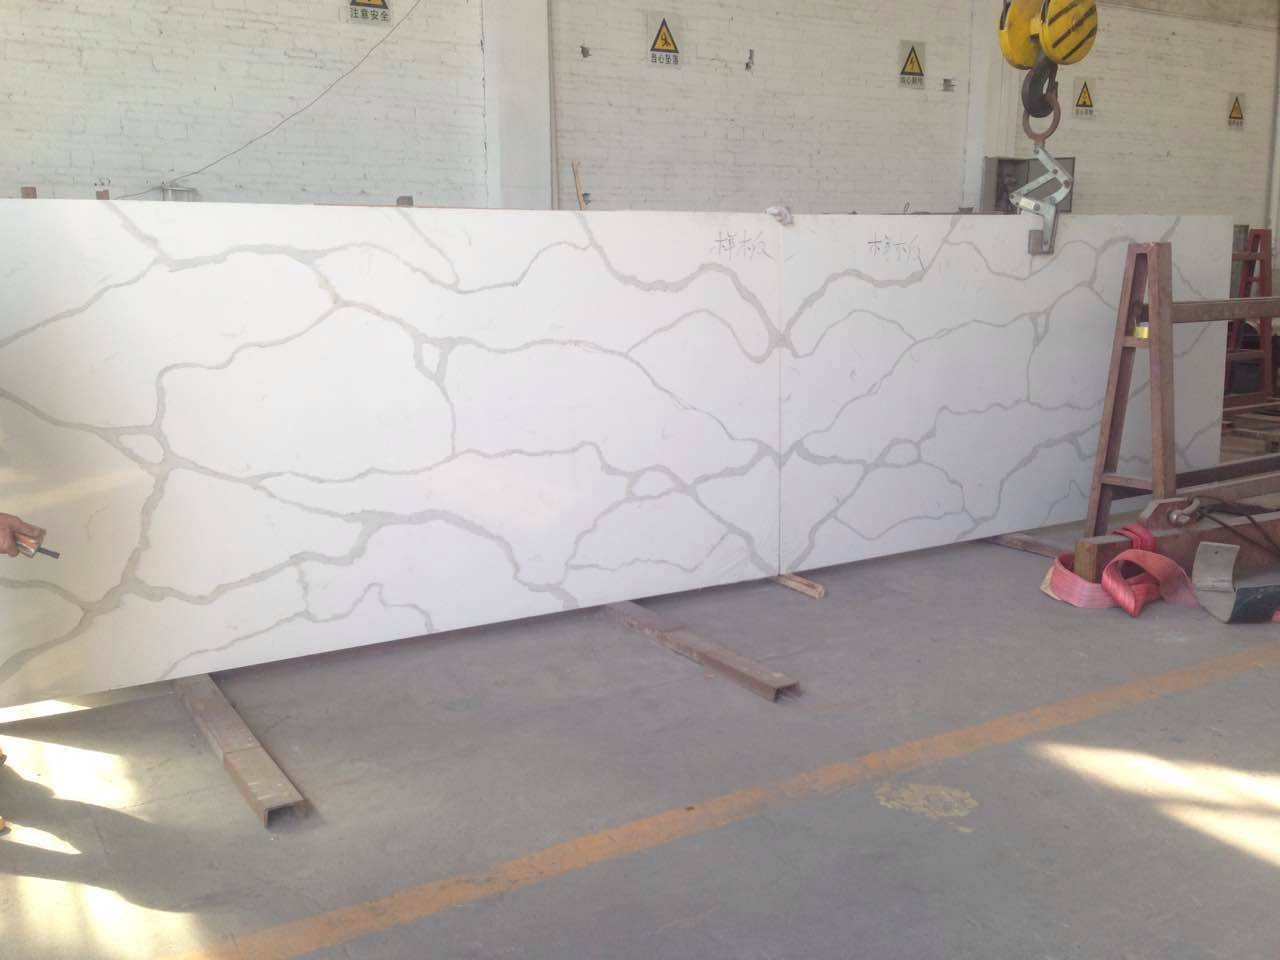 Bally Stone|Quartz stone factory|Quartz stone slabs supplier|Quartz surfaces manufacturer